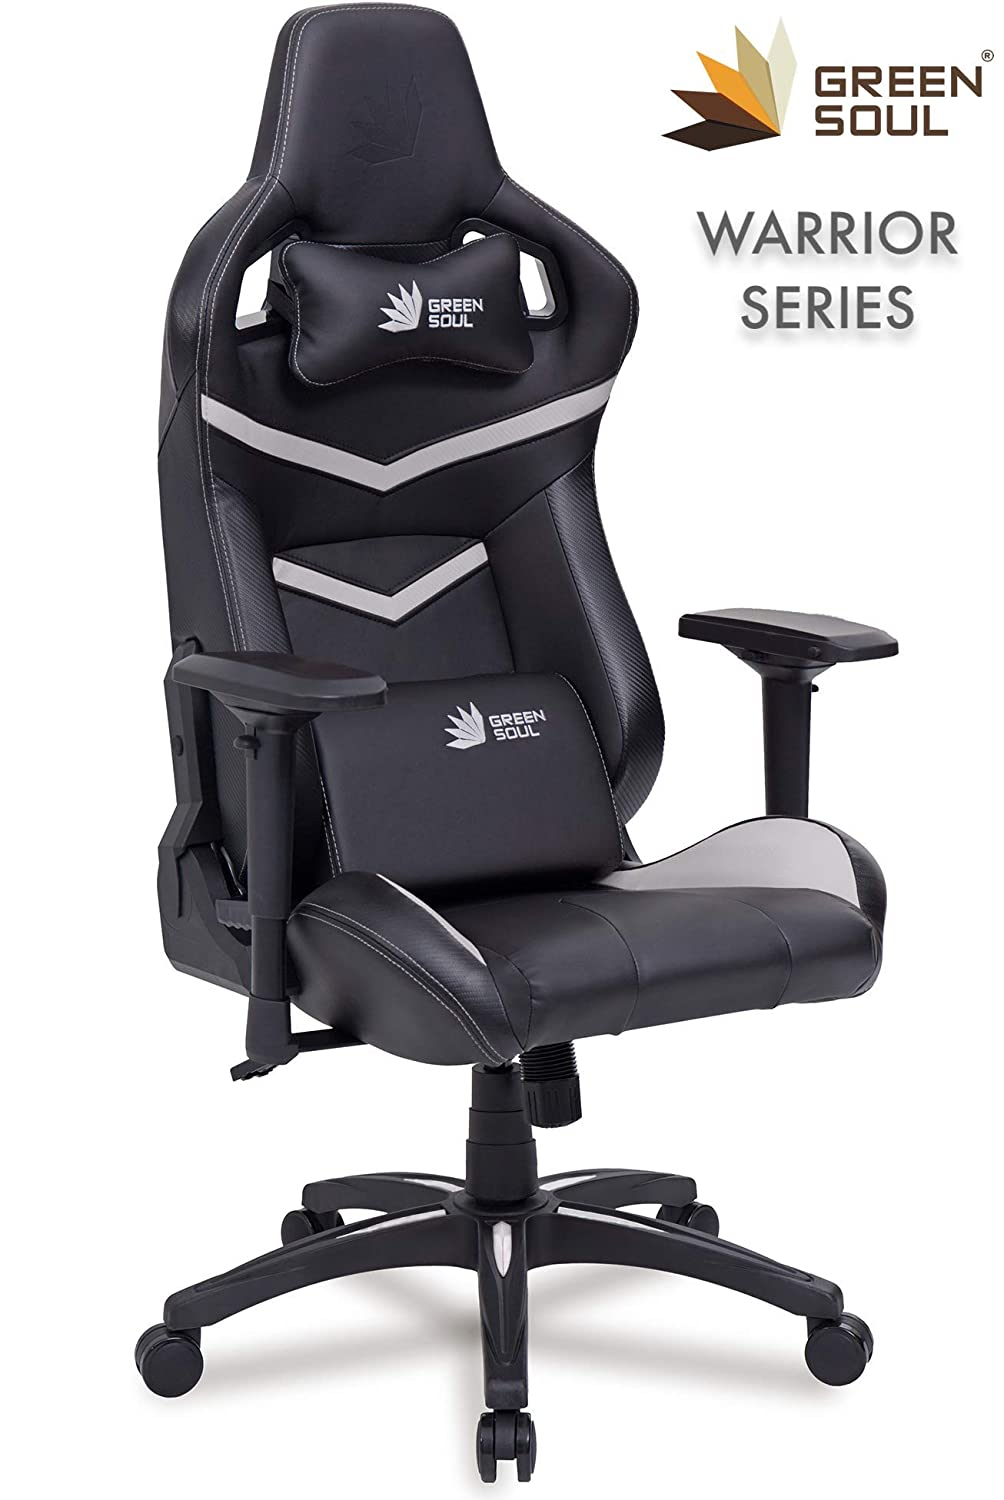 Green Soul Gaming/Office Chair/Black And White PU Leather